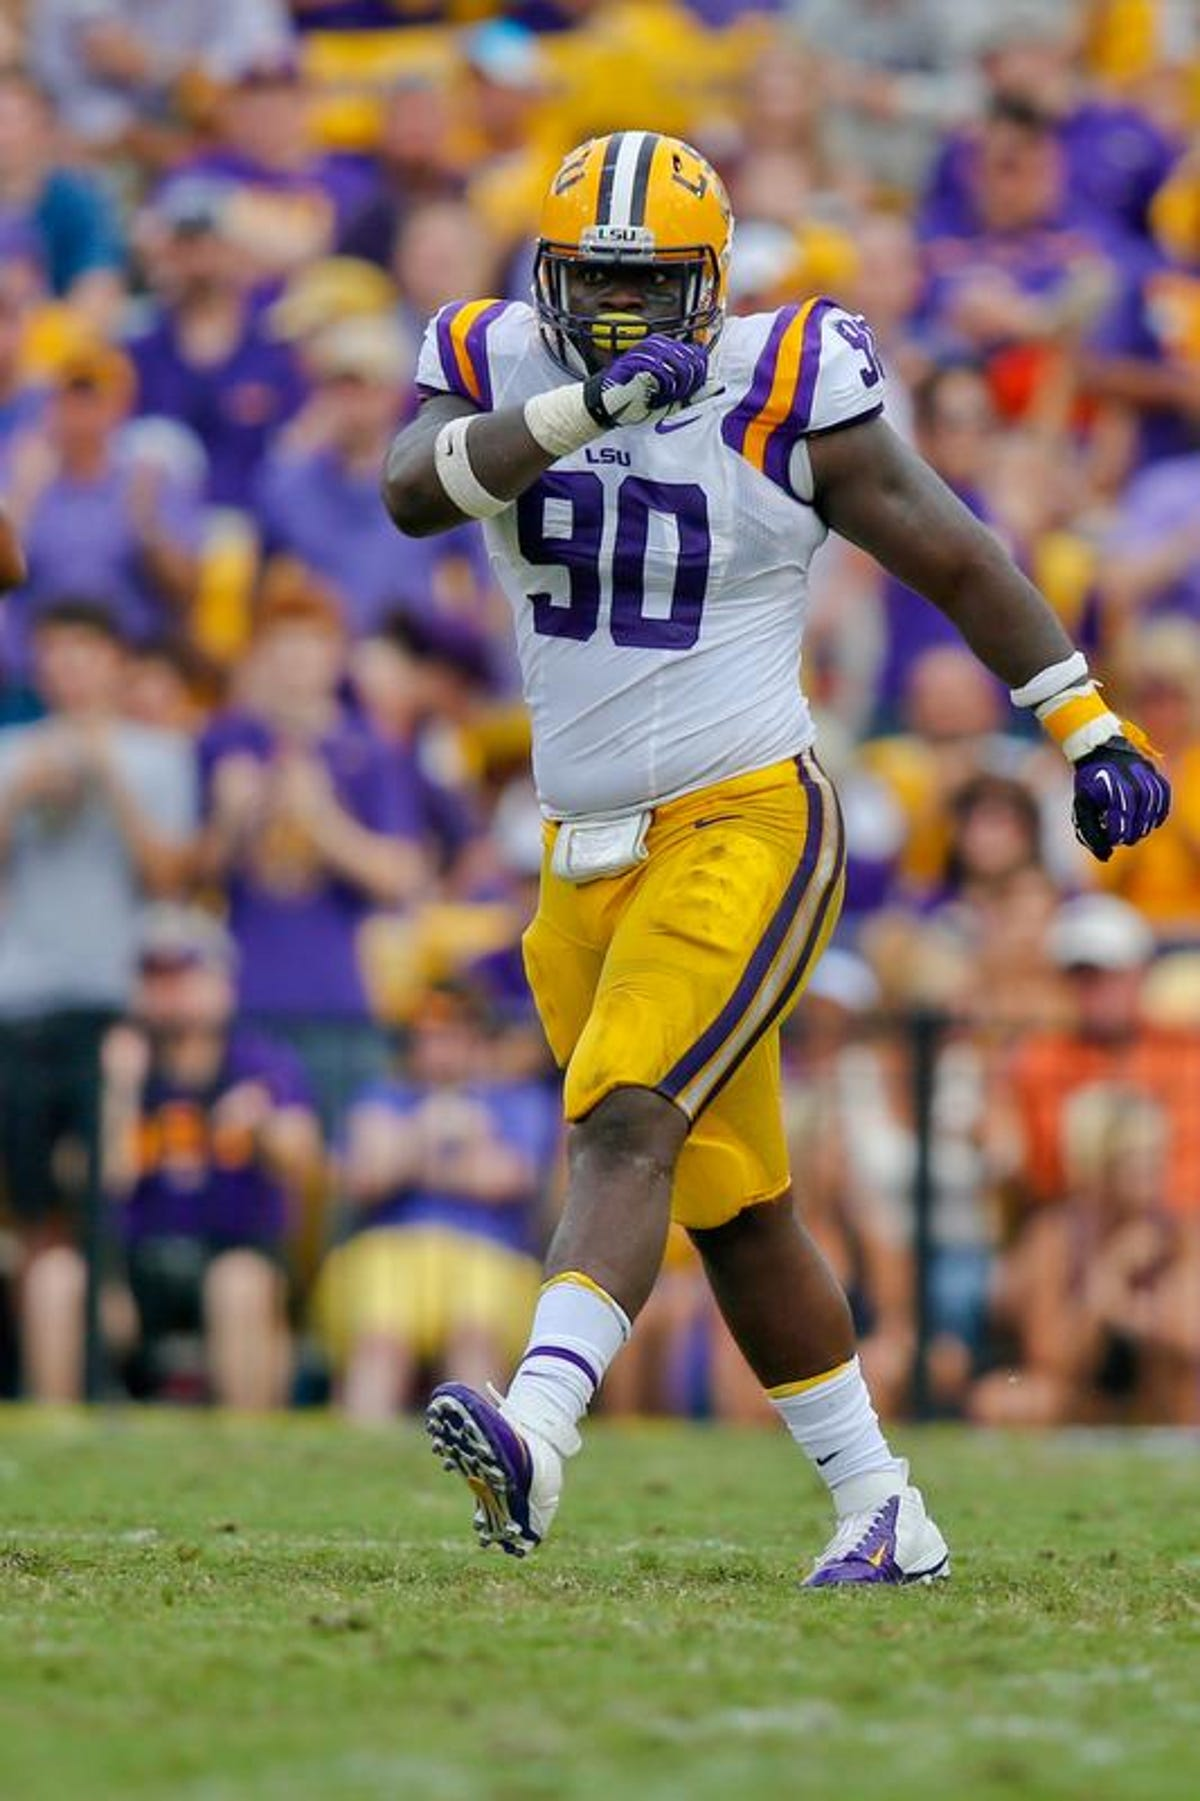 Eyeing NFL Draft: LSU underclassmen continue to be tempted